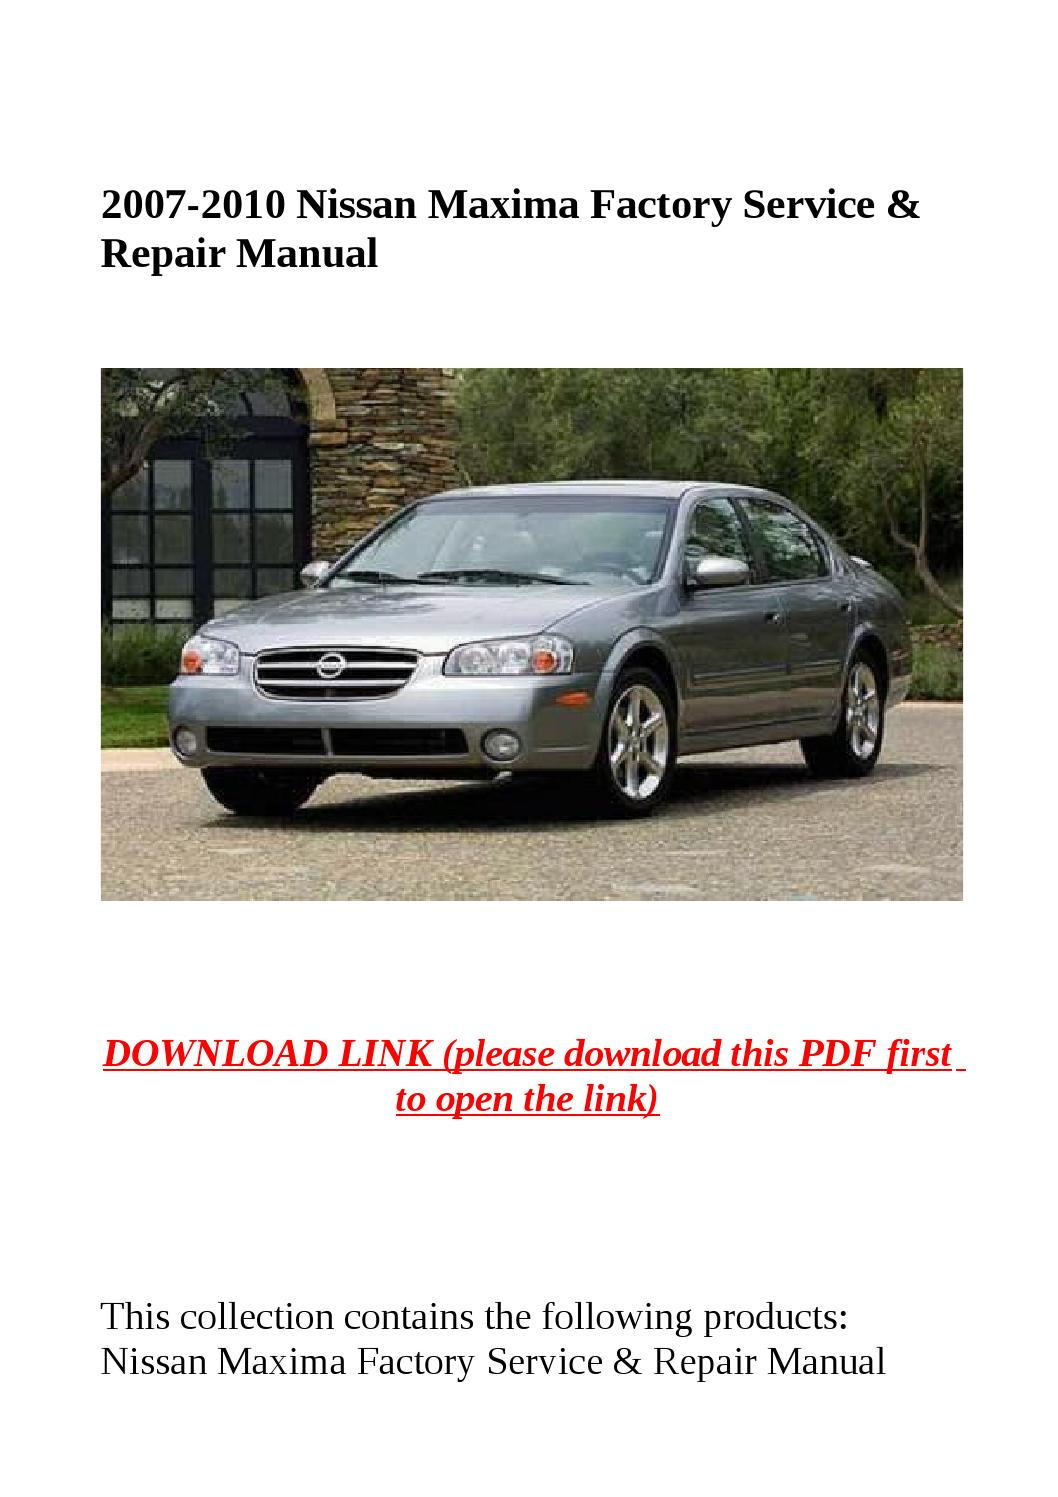 2010 nissan maxima user manual